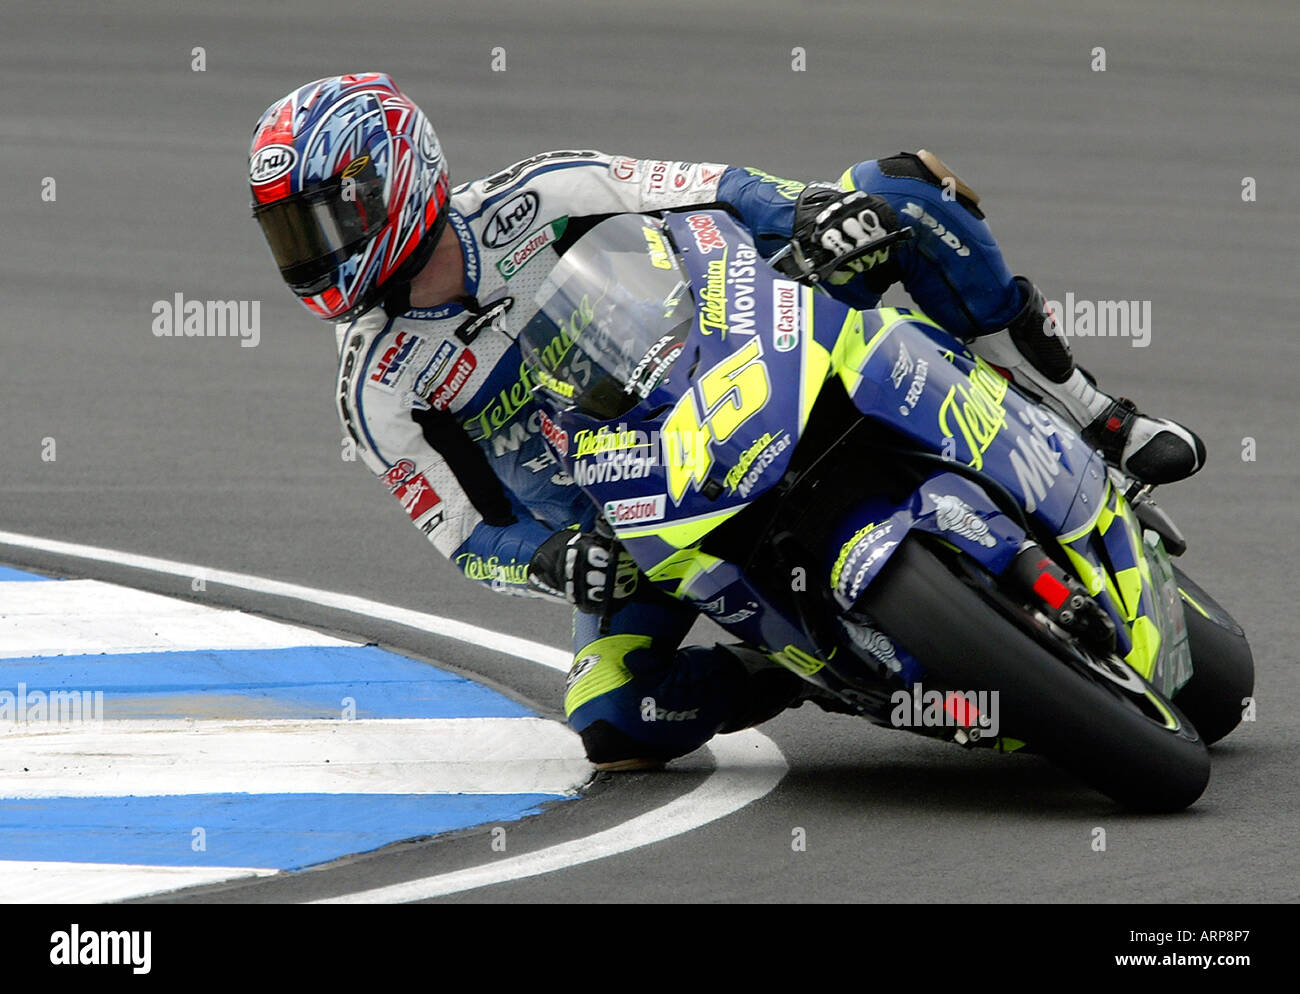 Sete Gibernau, Spanish Moto GP rider Stock Photo: 9201766 - Alamy